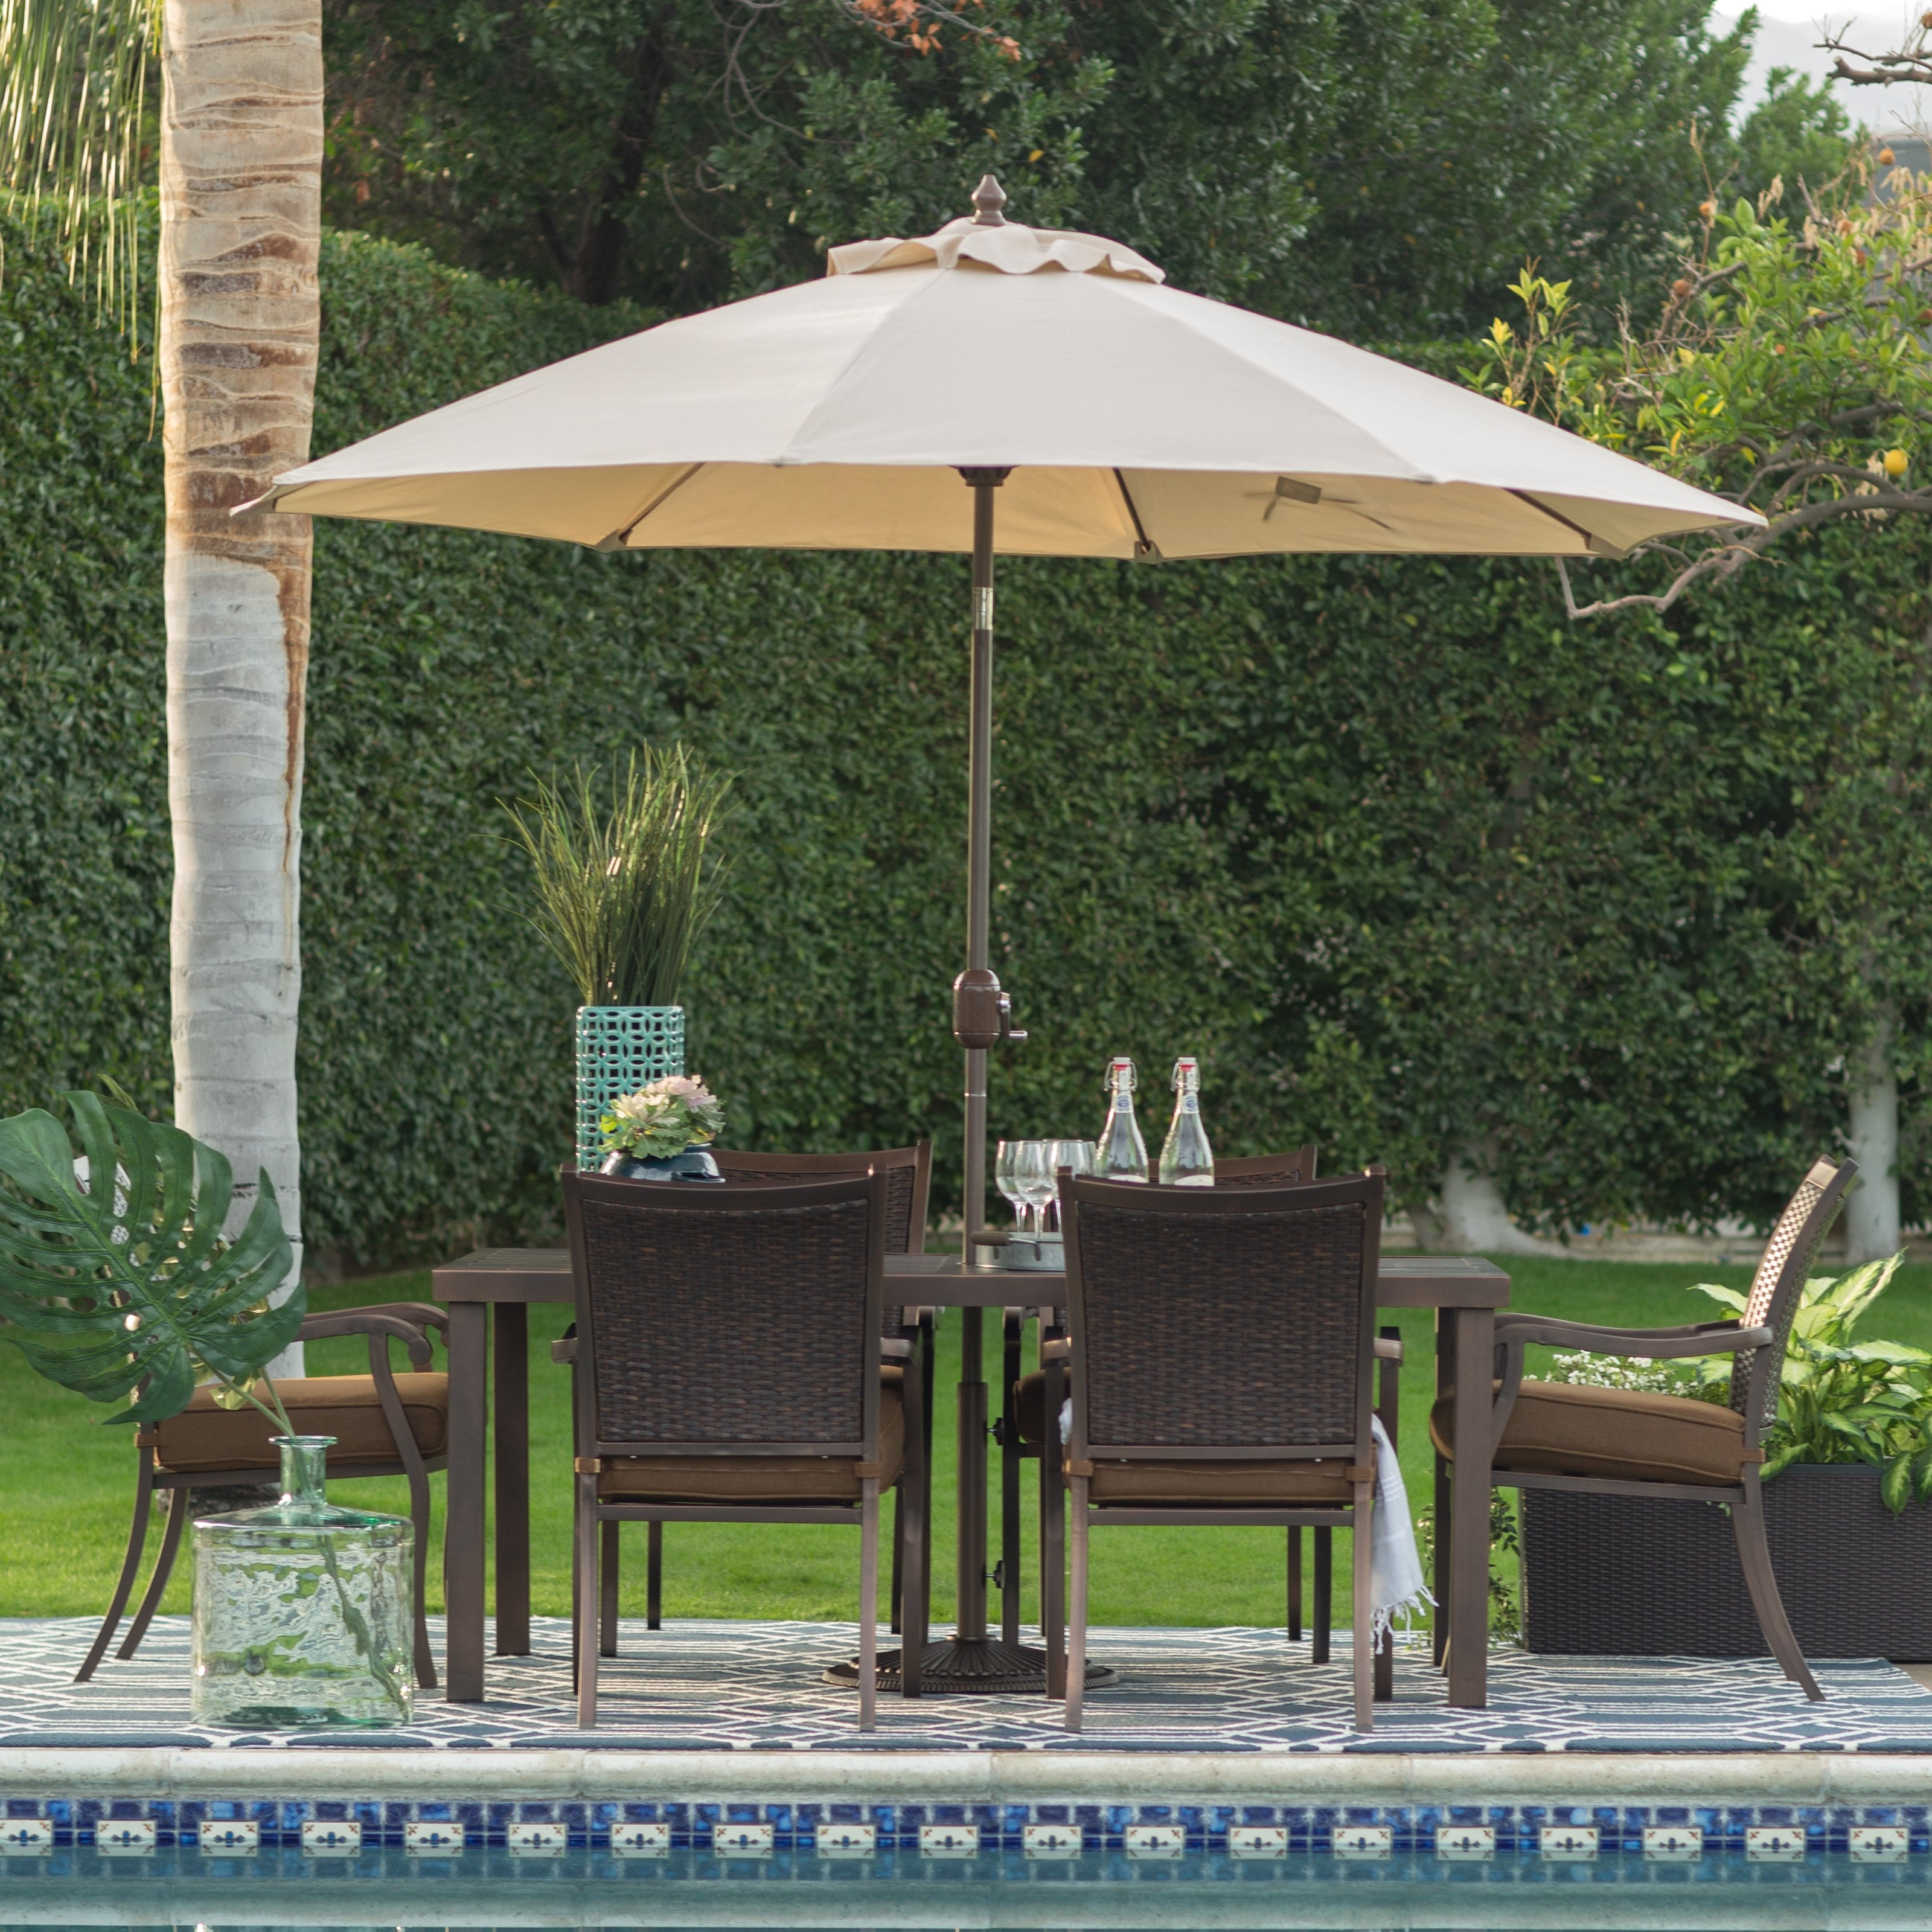 Heavy Duty Patio Umbrellas Within Current Patio Ideas Heavy Duty Patio Umbrella With Cream Patio Umbrella And (View 1 of 20)